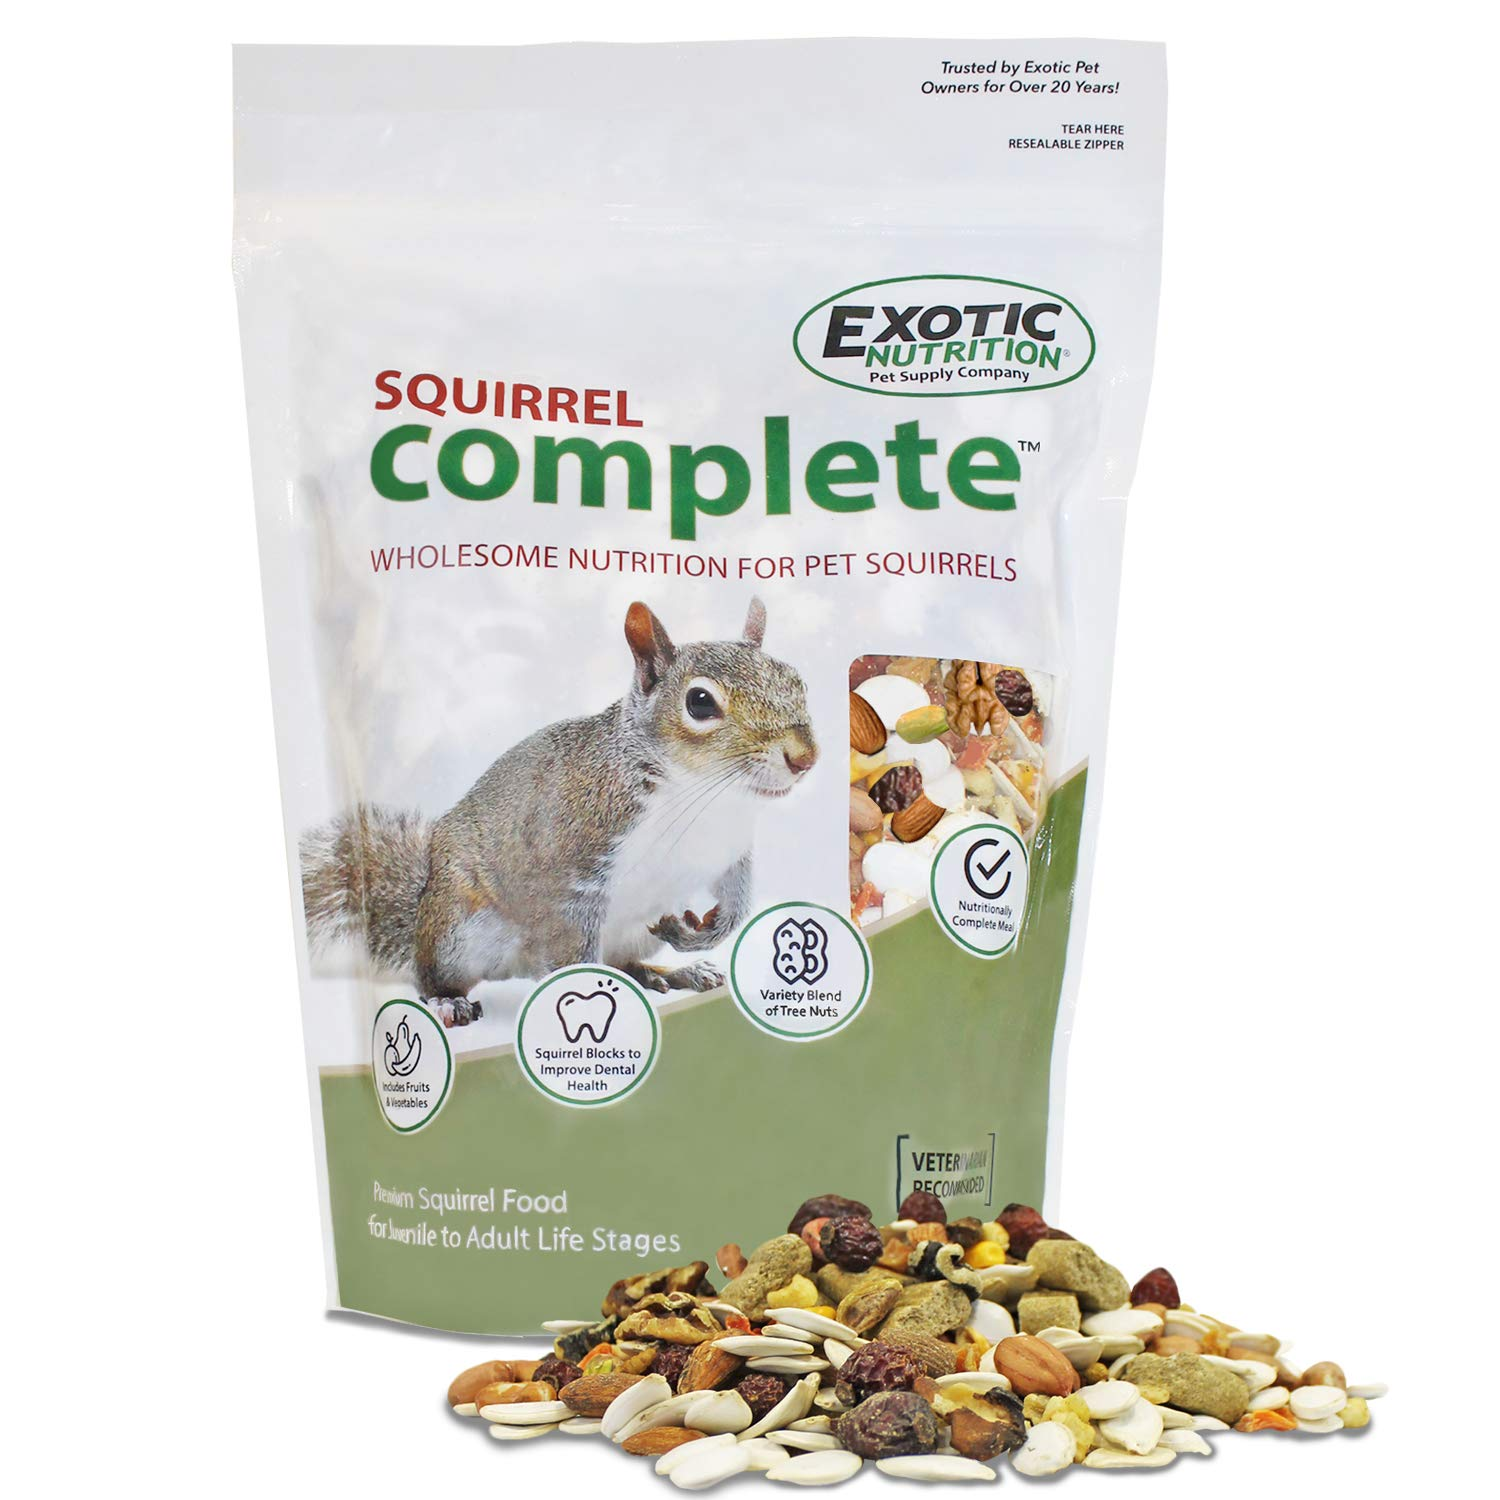 Squirrel Complete (1.75 lb.) - Healthy Natural Food - Nutritionally Complete Diet for Pet & Captive Squirrels - Ground Squirrels, Grey Squirrels, Flying Squirrels, Chipmunks by Exotic Nutrition